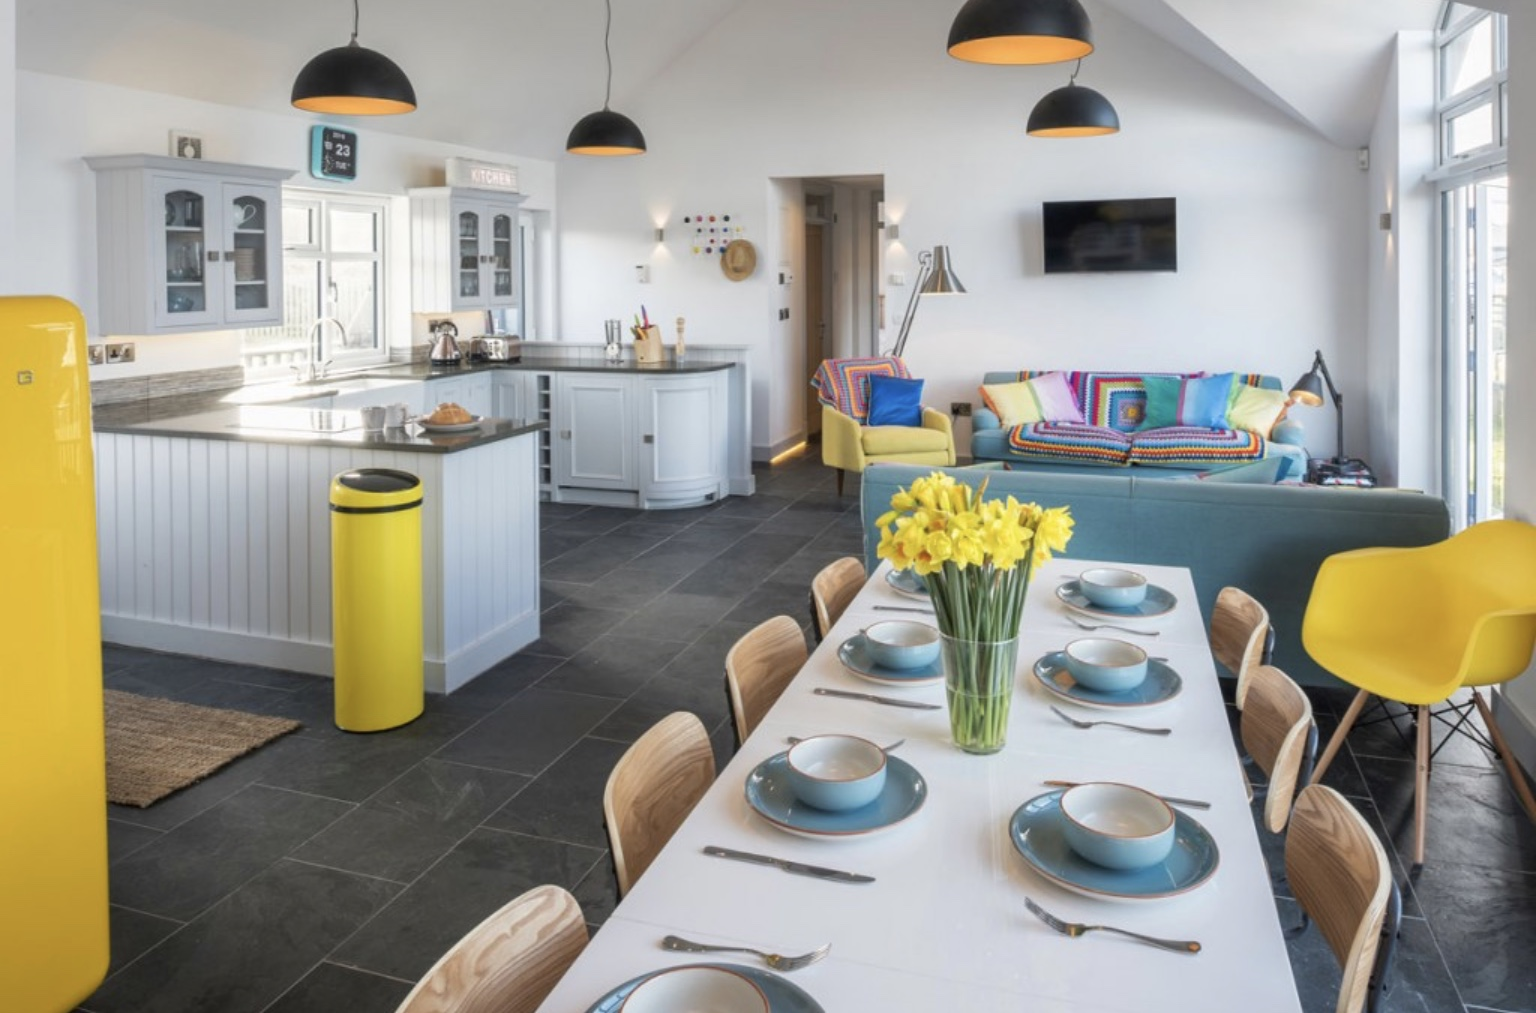 Kitchen Dining and living area in Surf Six holiday home in Cornwall with beach decor and eclectic colour scheme